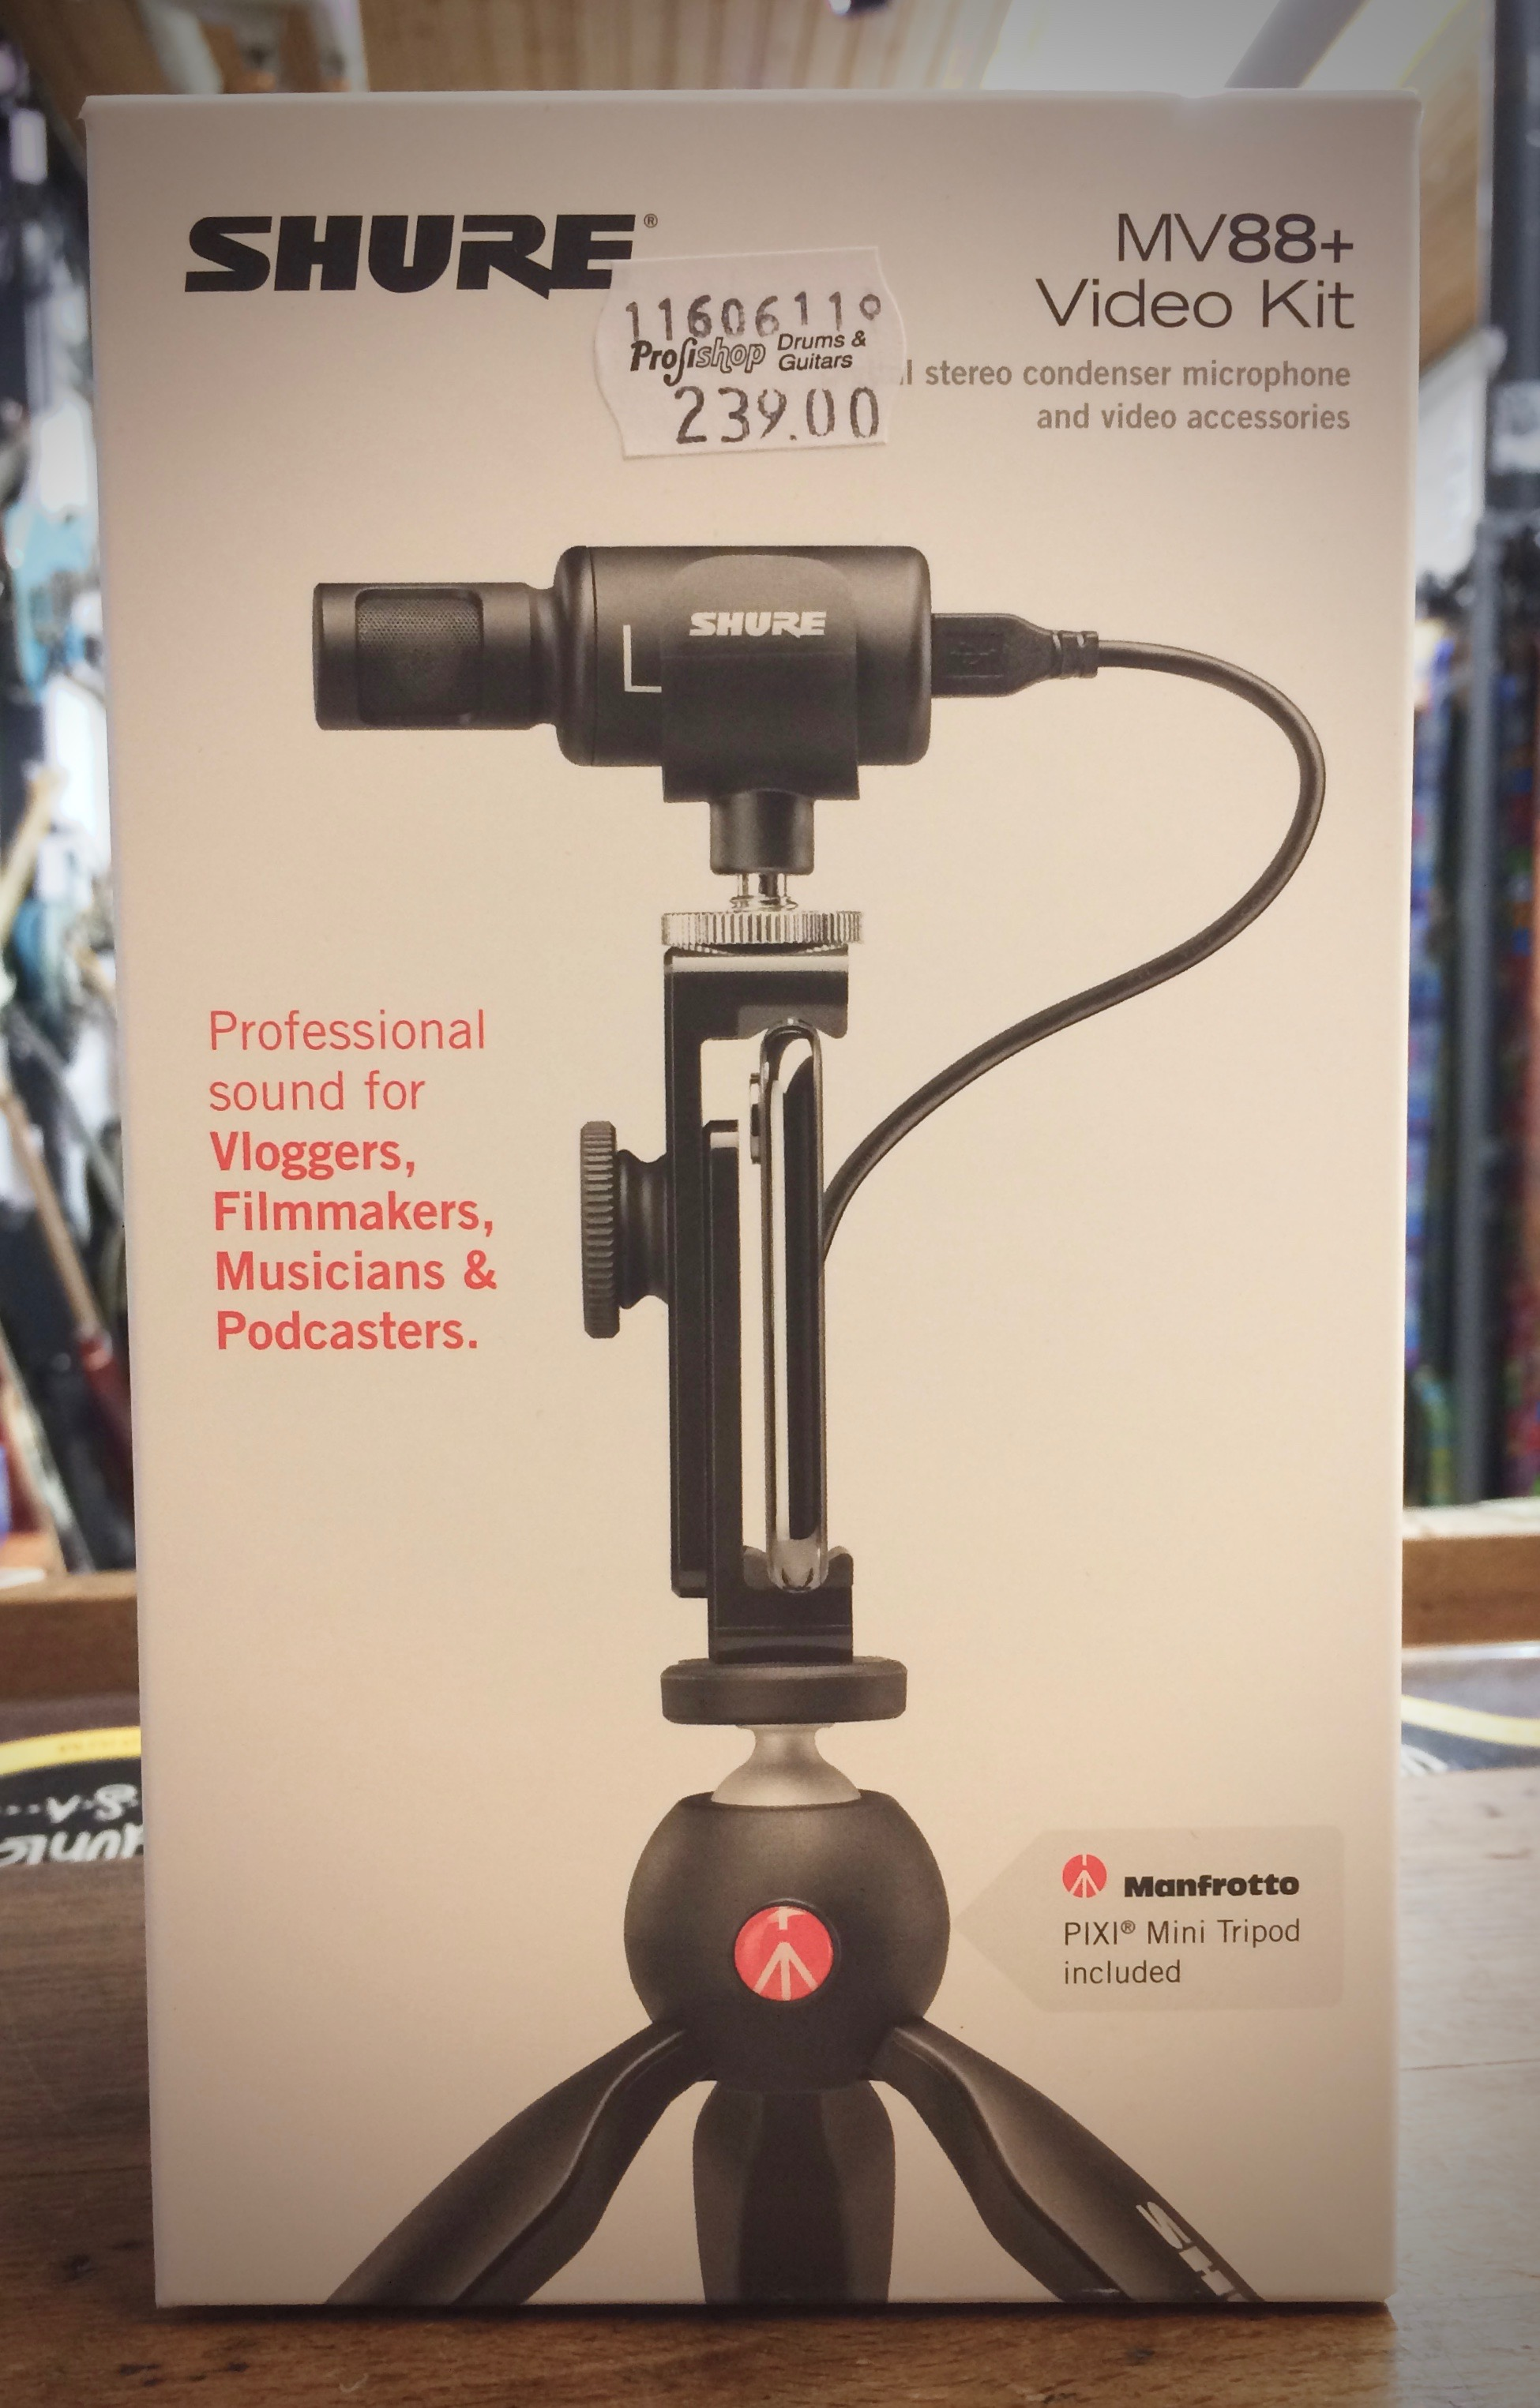 ***Mobiles Videostudio mit dem SHURE MV88+ Video Kit***